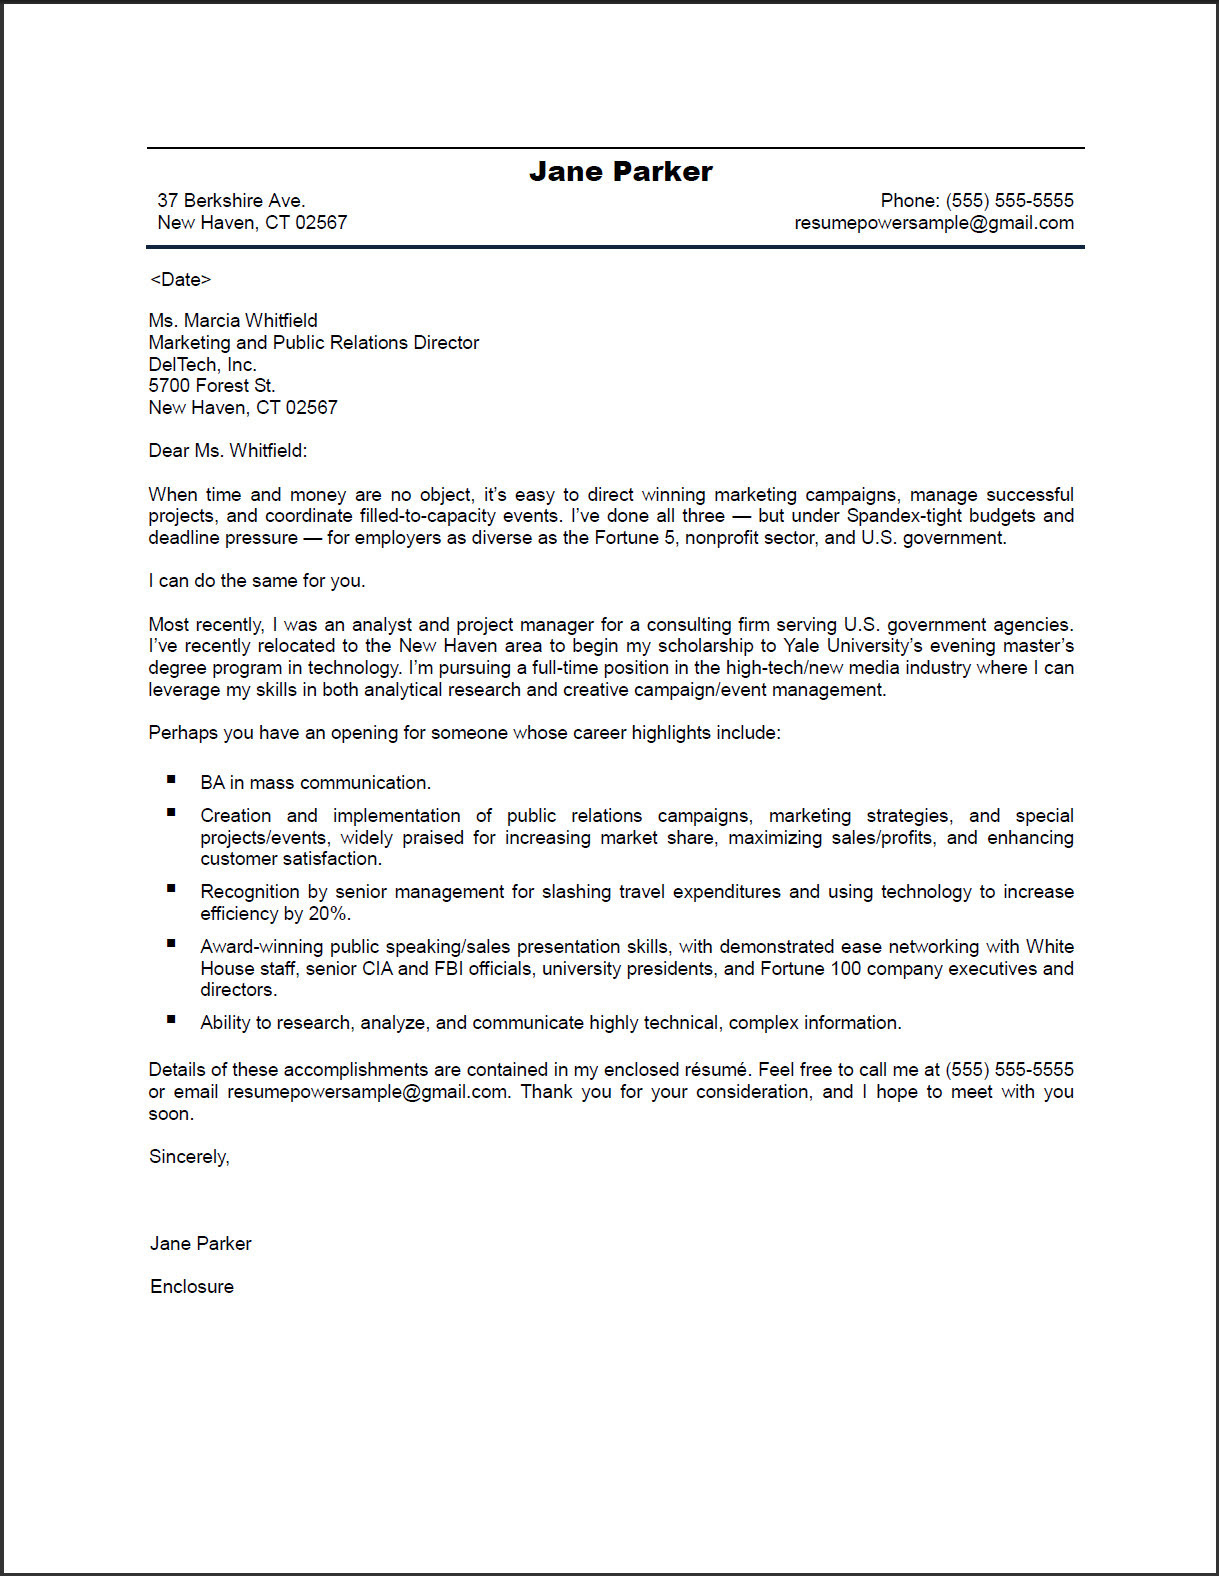 Cover Letter Sample For Fax from lh3.googleusercontent.com